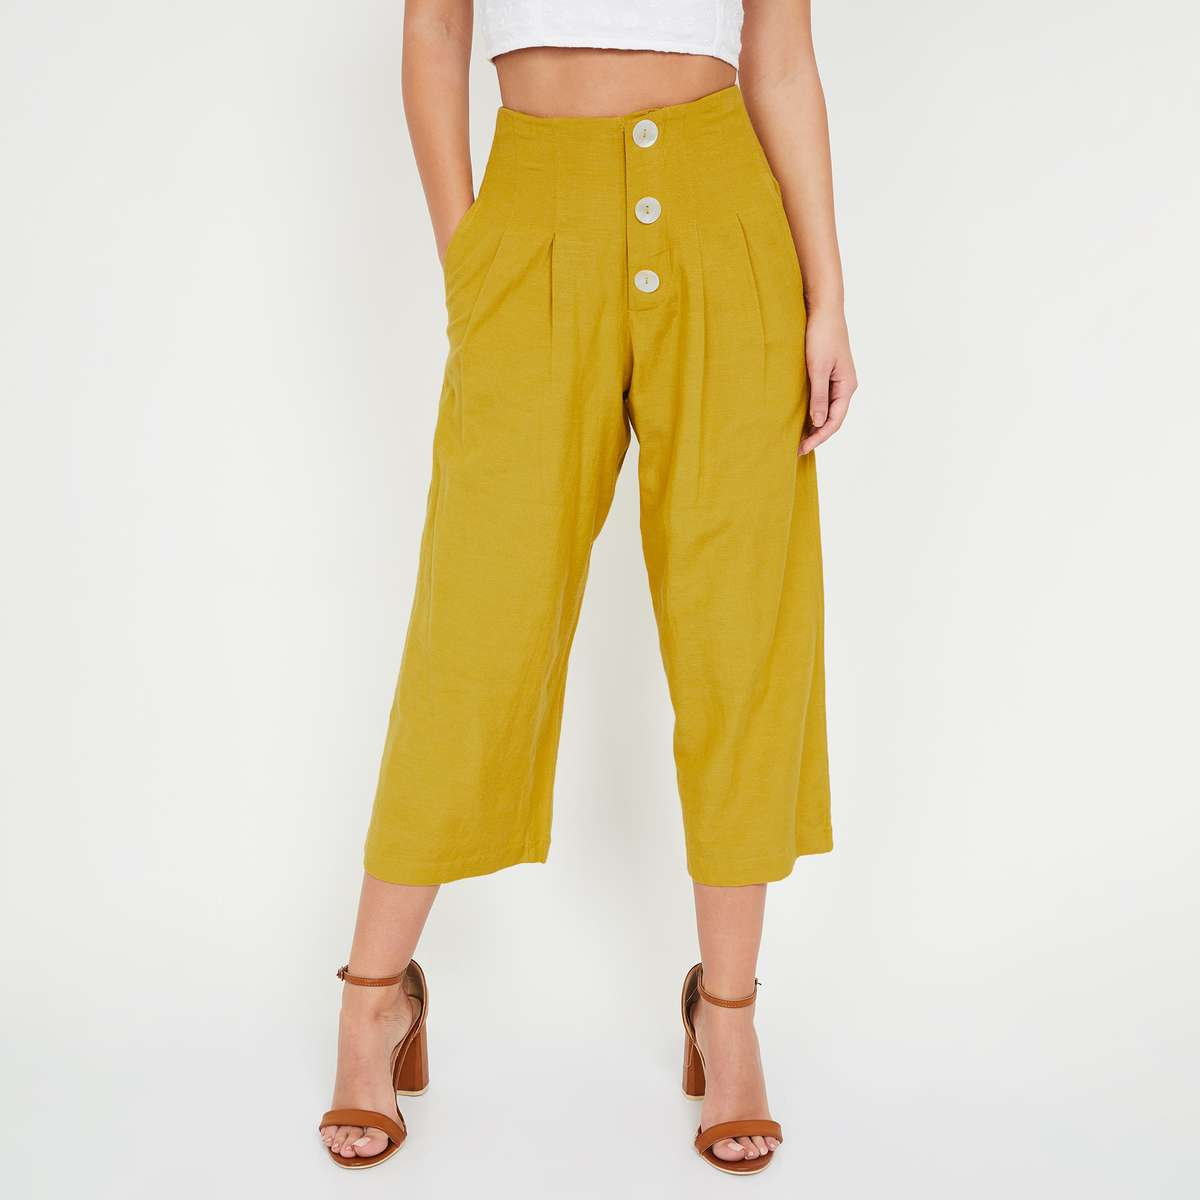 4.GINGER Solid Pleated Culottes